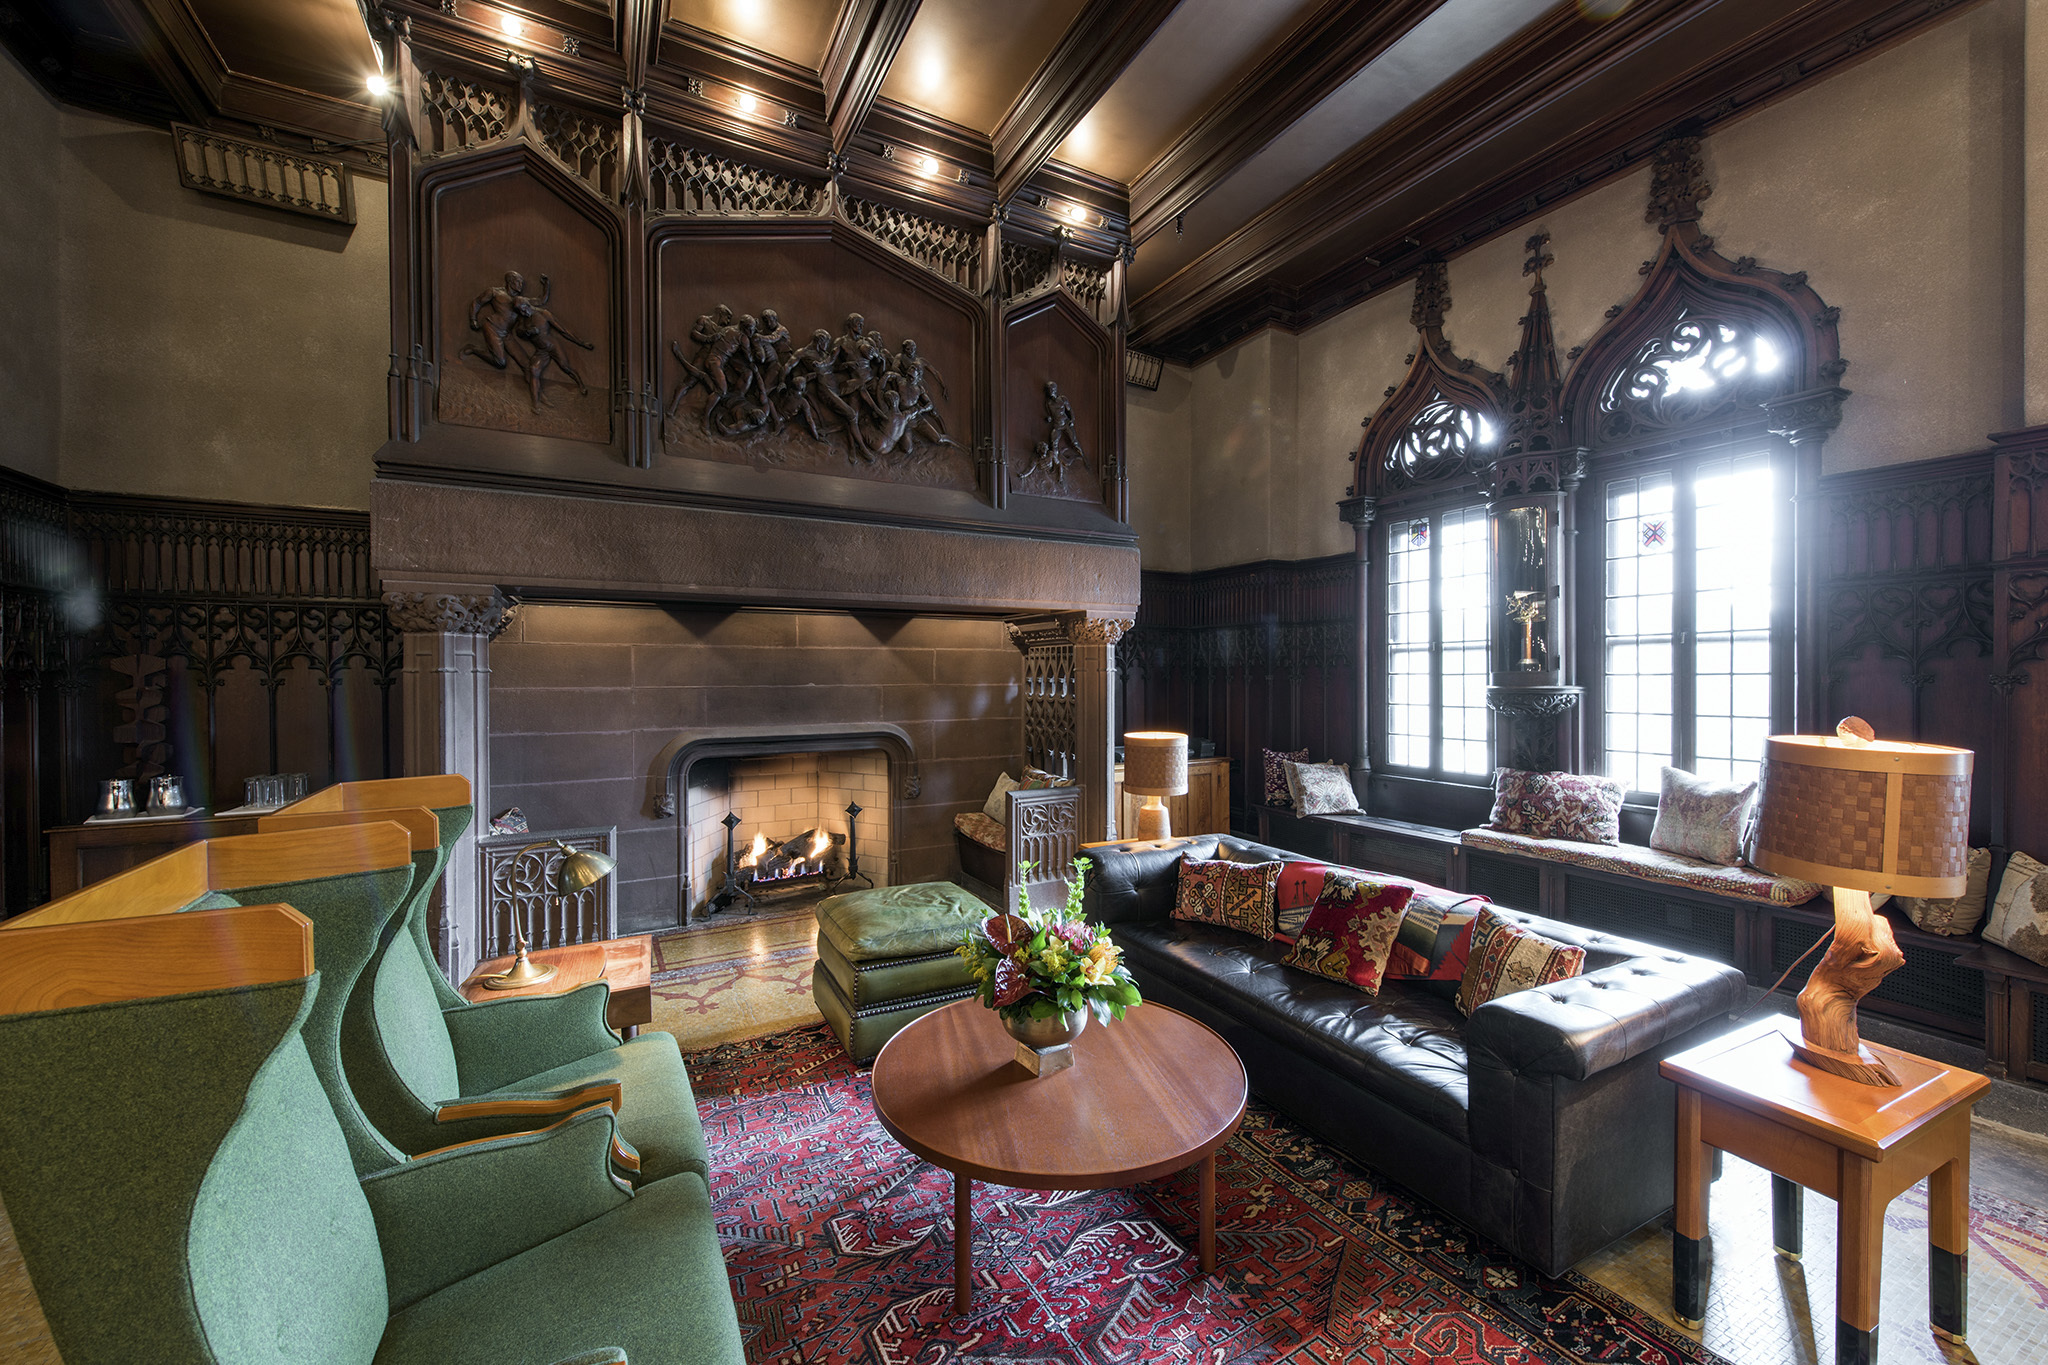 59 Chicago restaurants and bars with fireplaces